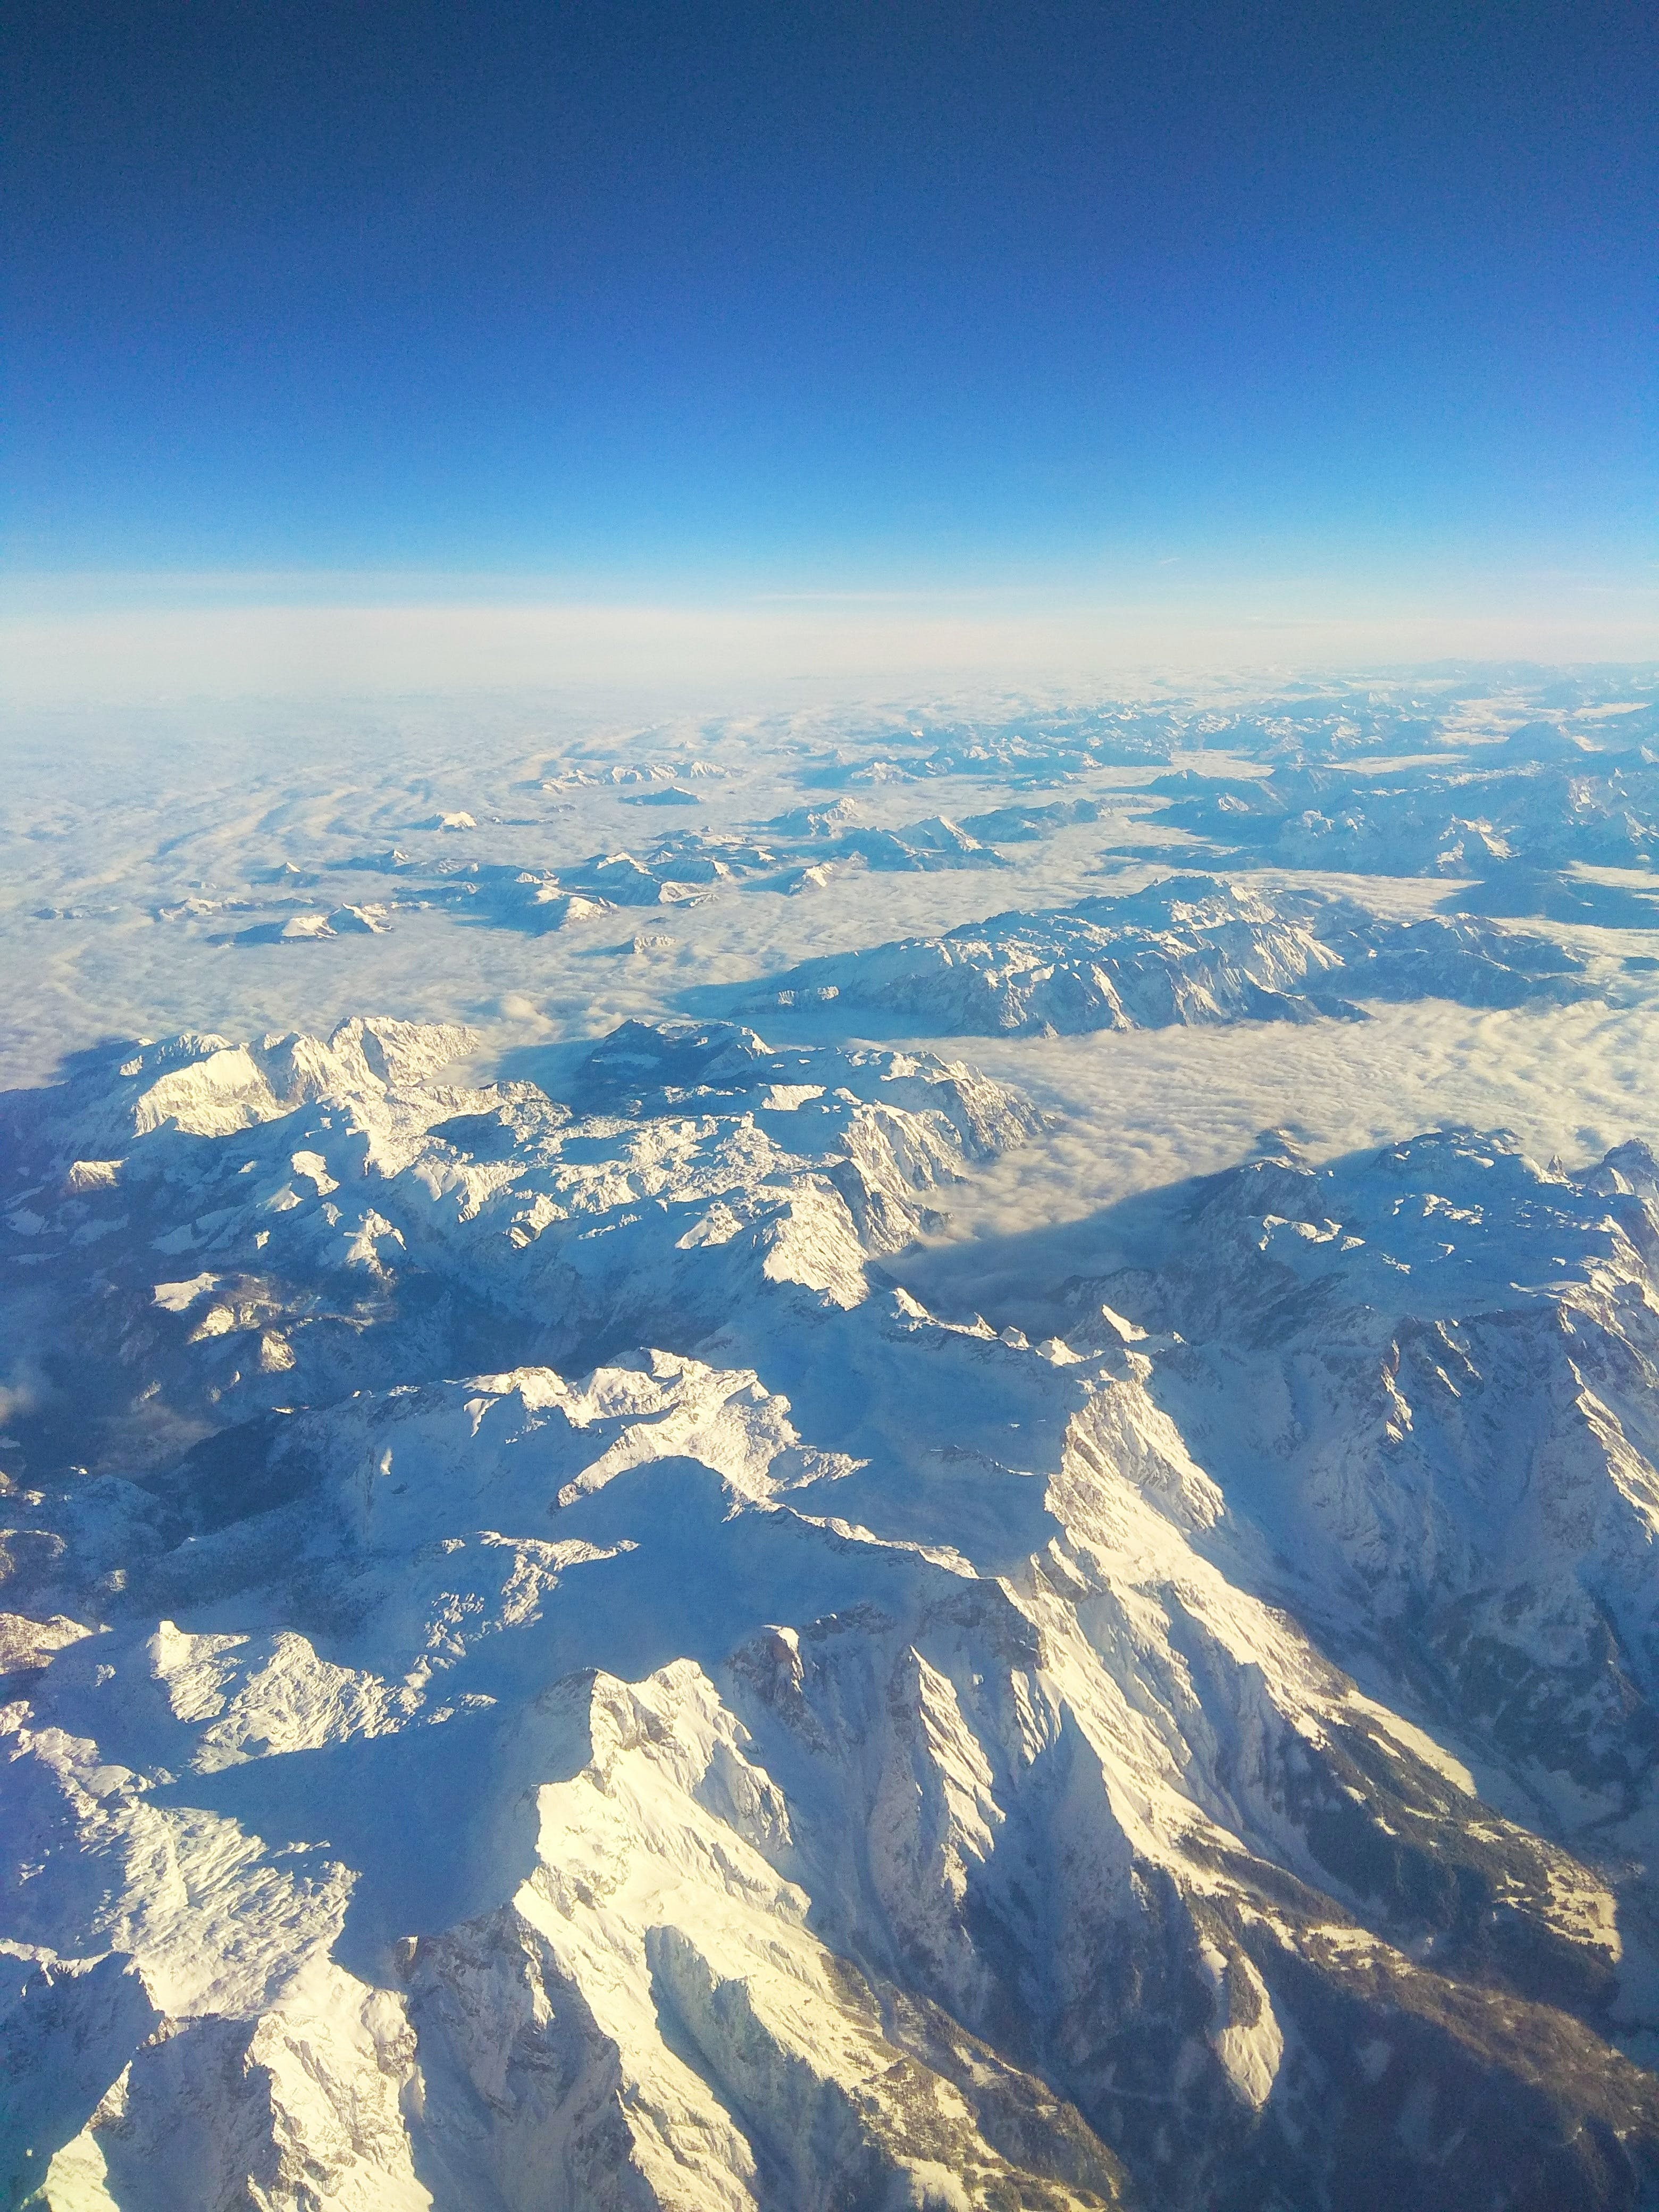 Aerial View of Snow-covered Mountains